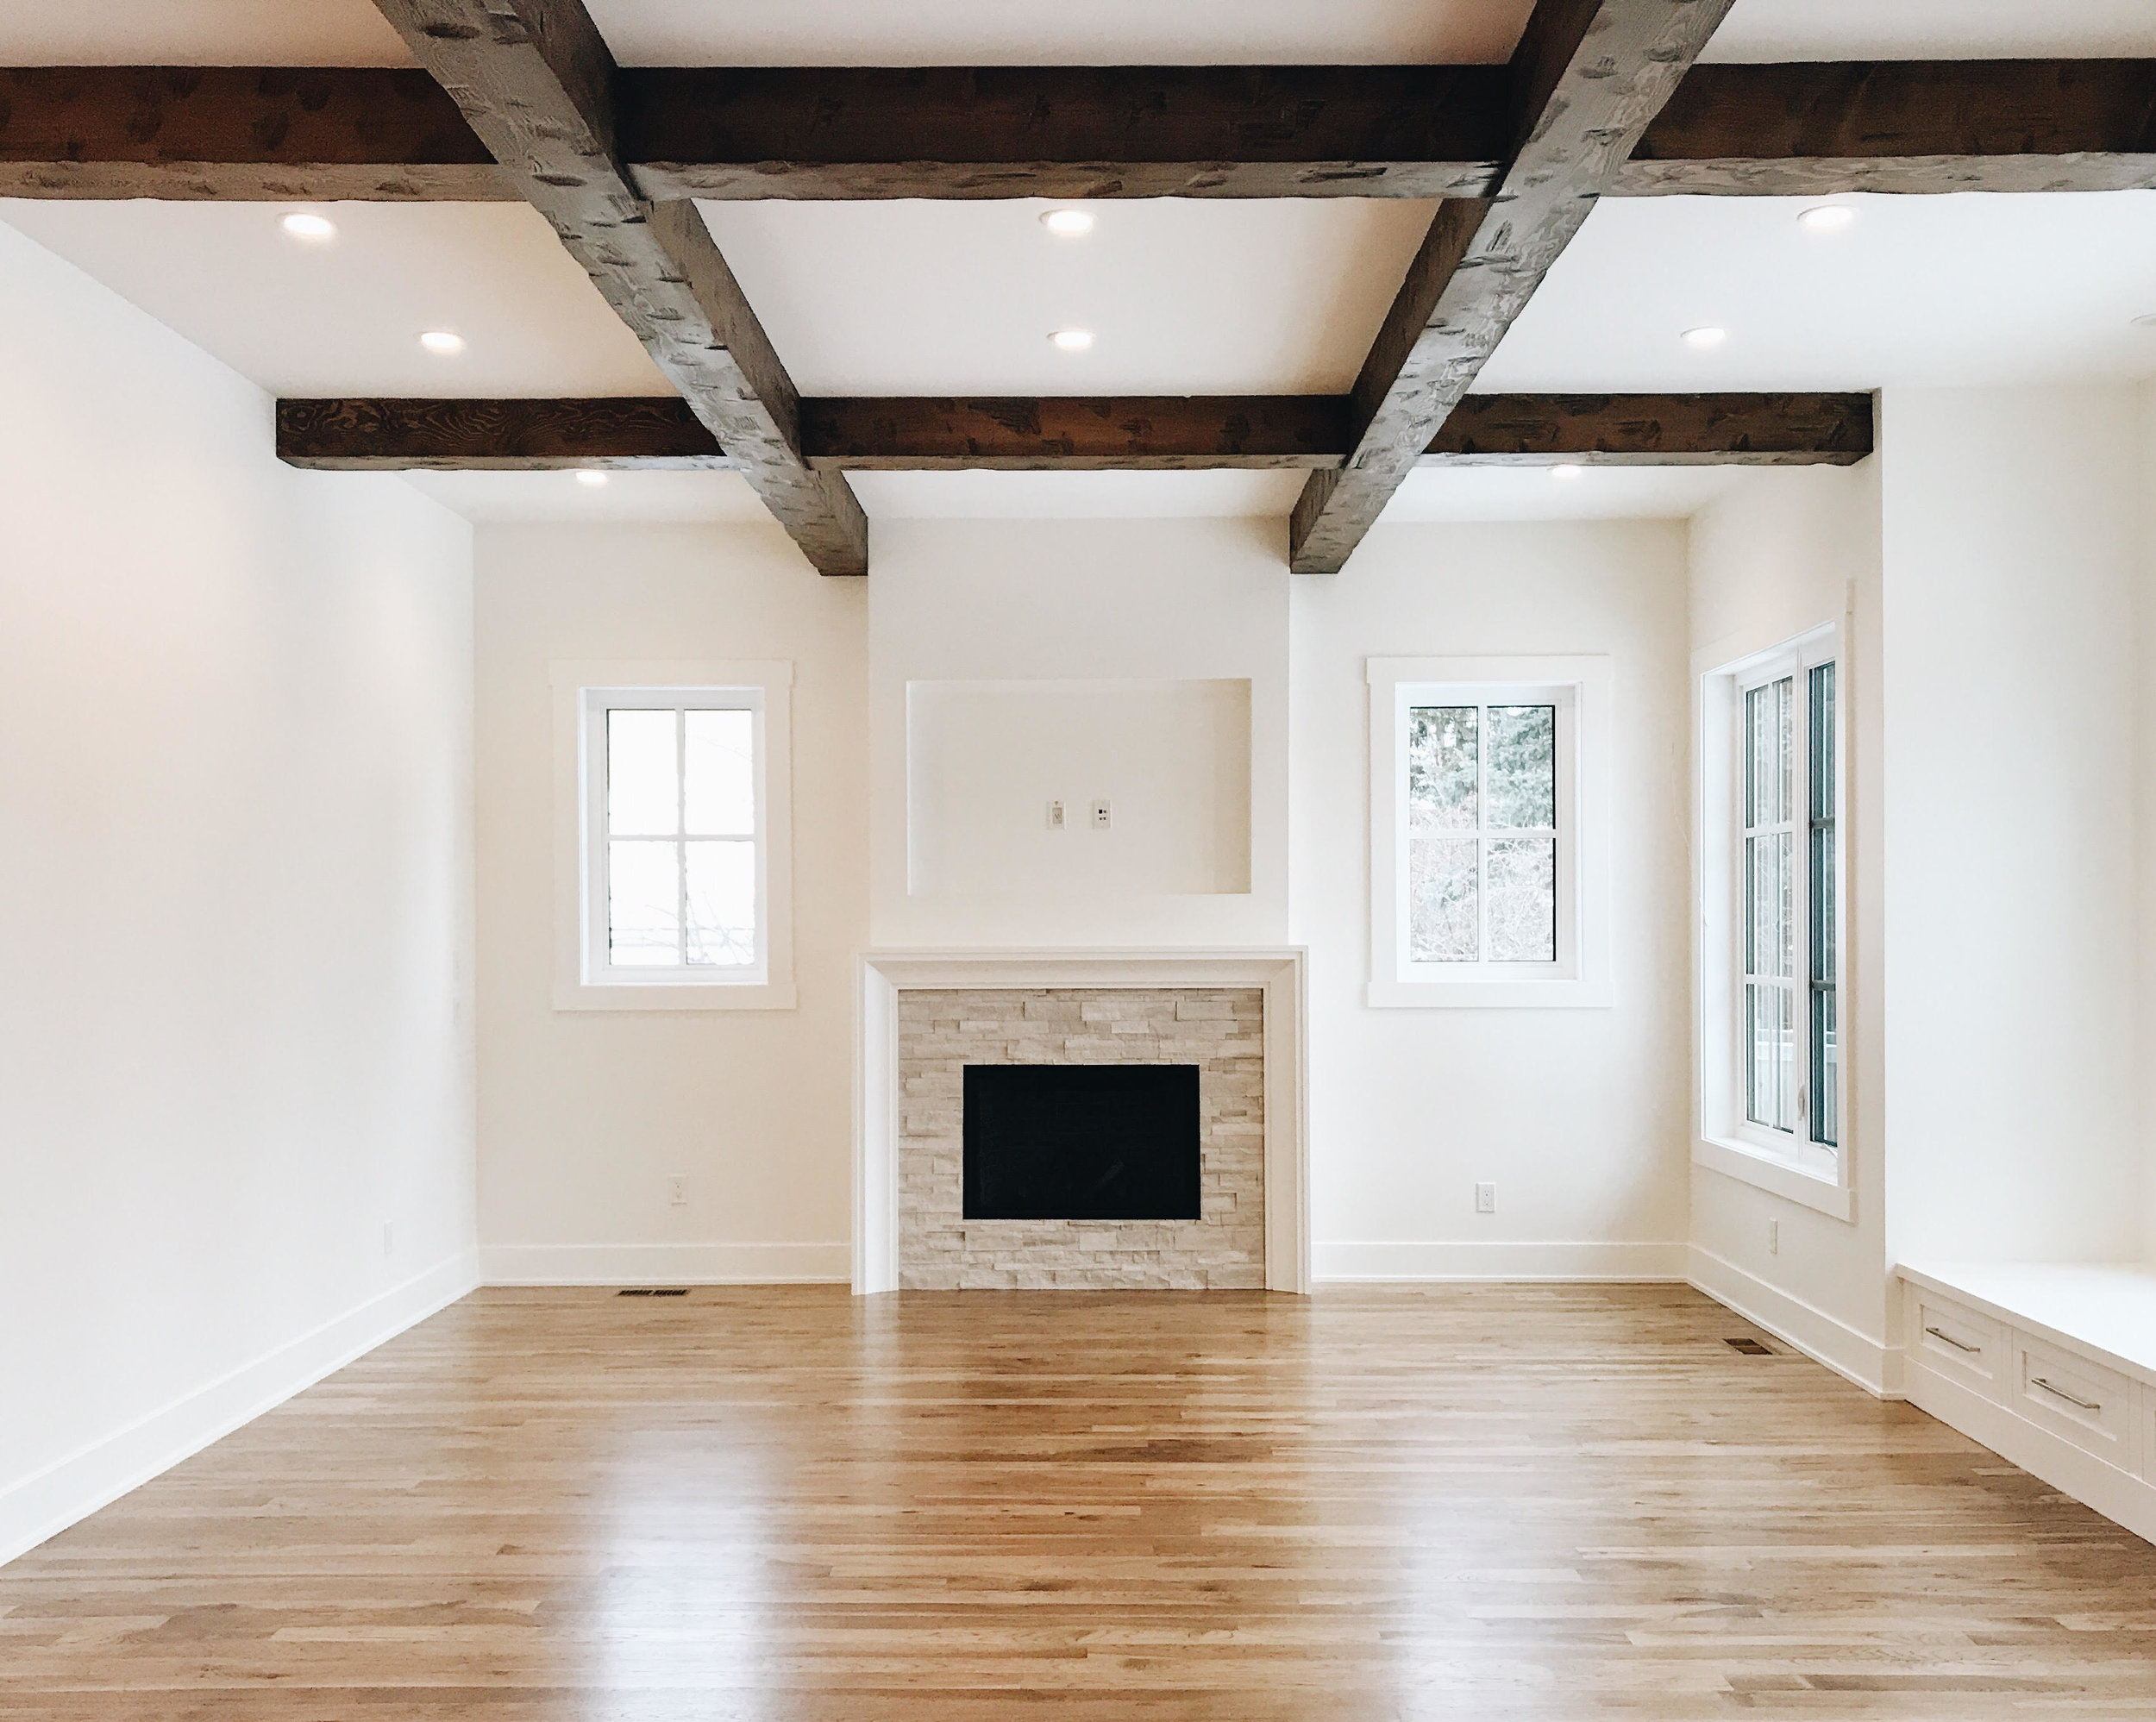 The look of the family room upon arrival for installation.All ready for us to make our mark! This is also the last visual our clients had of this space.